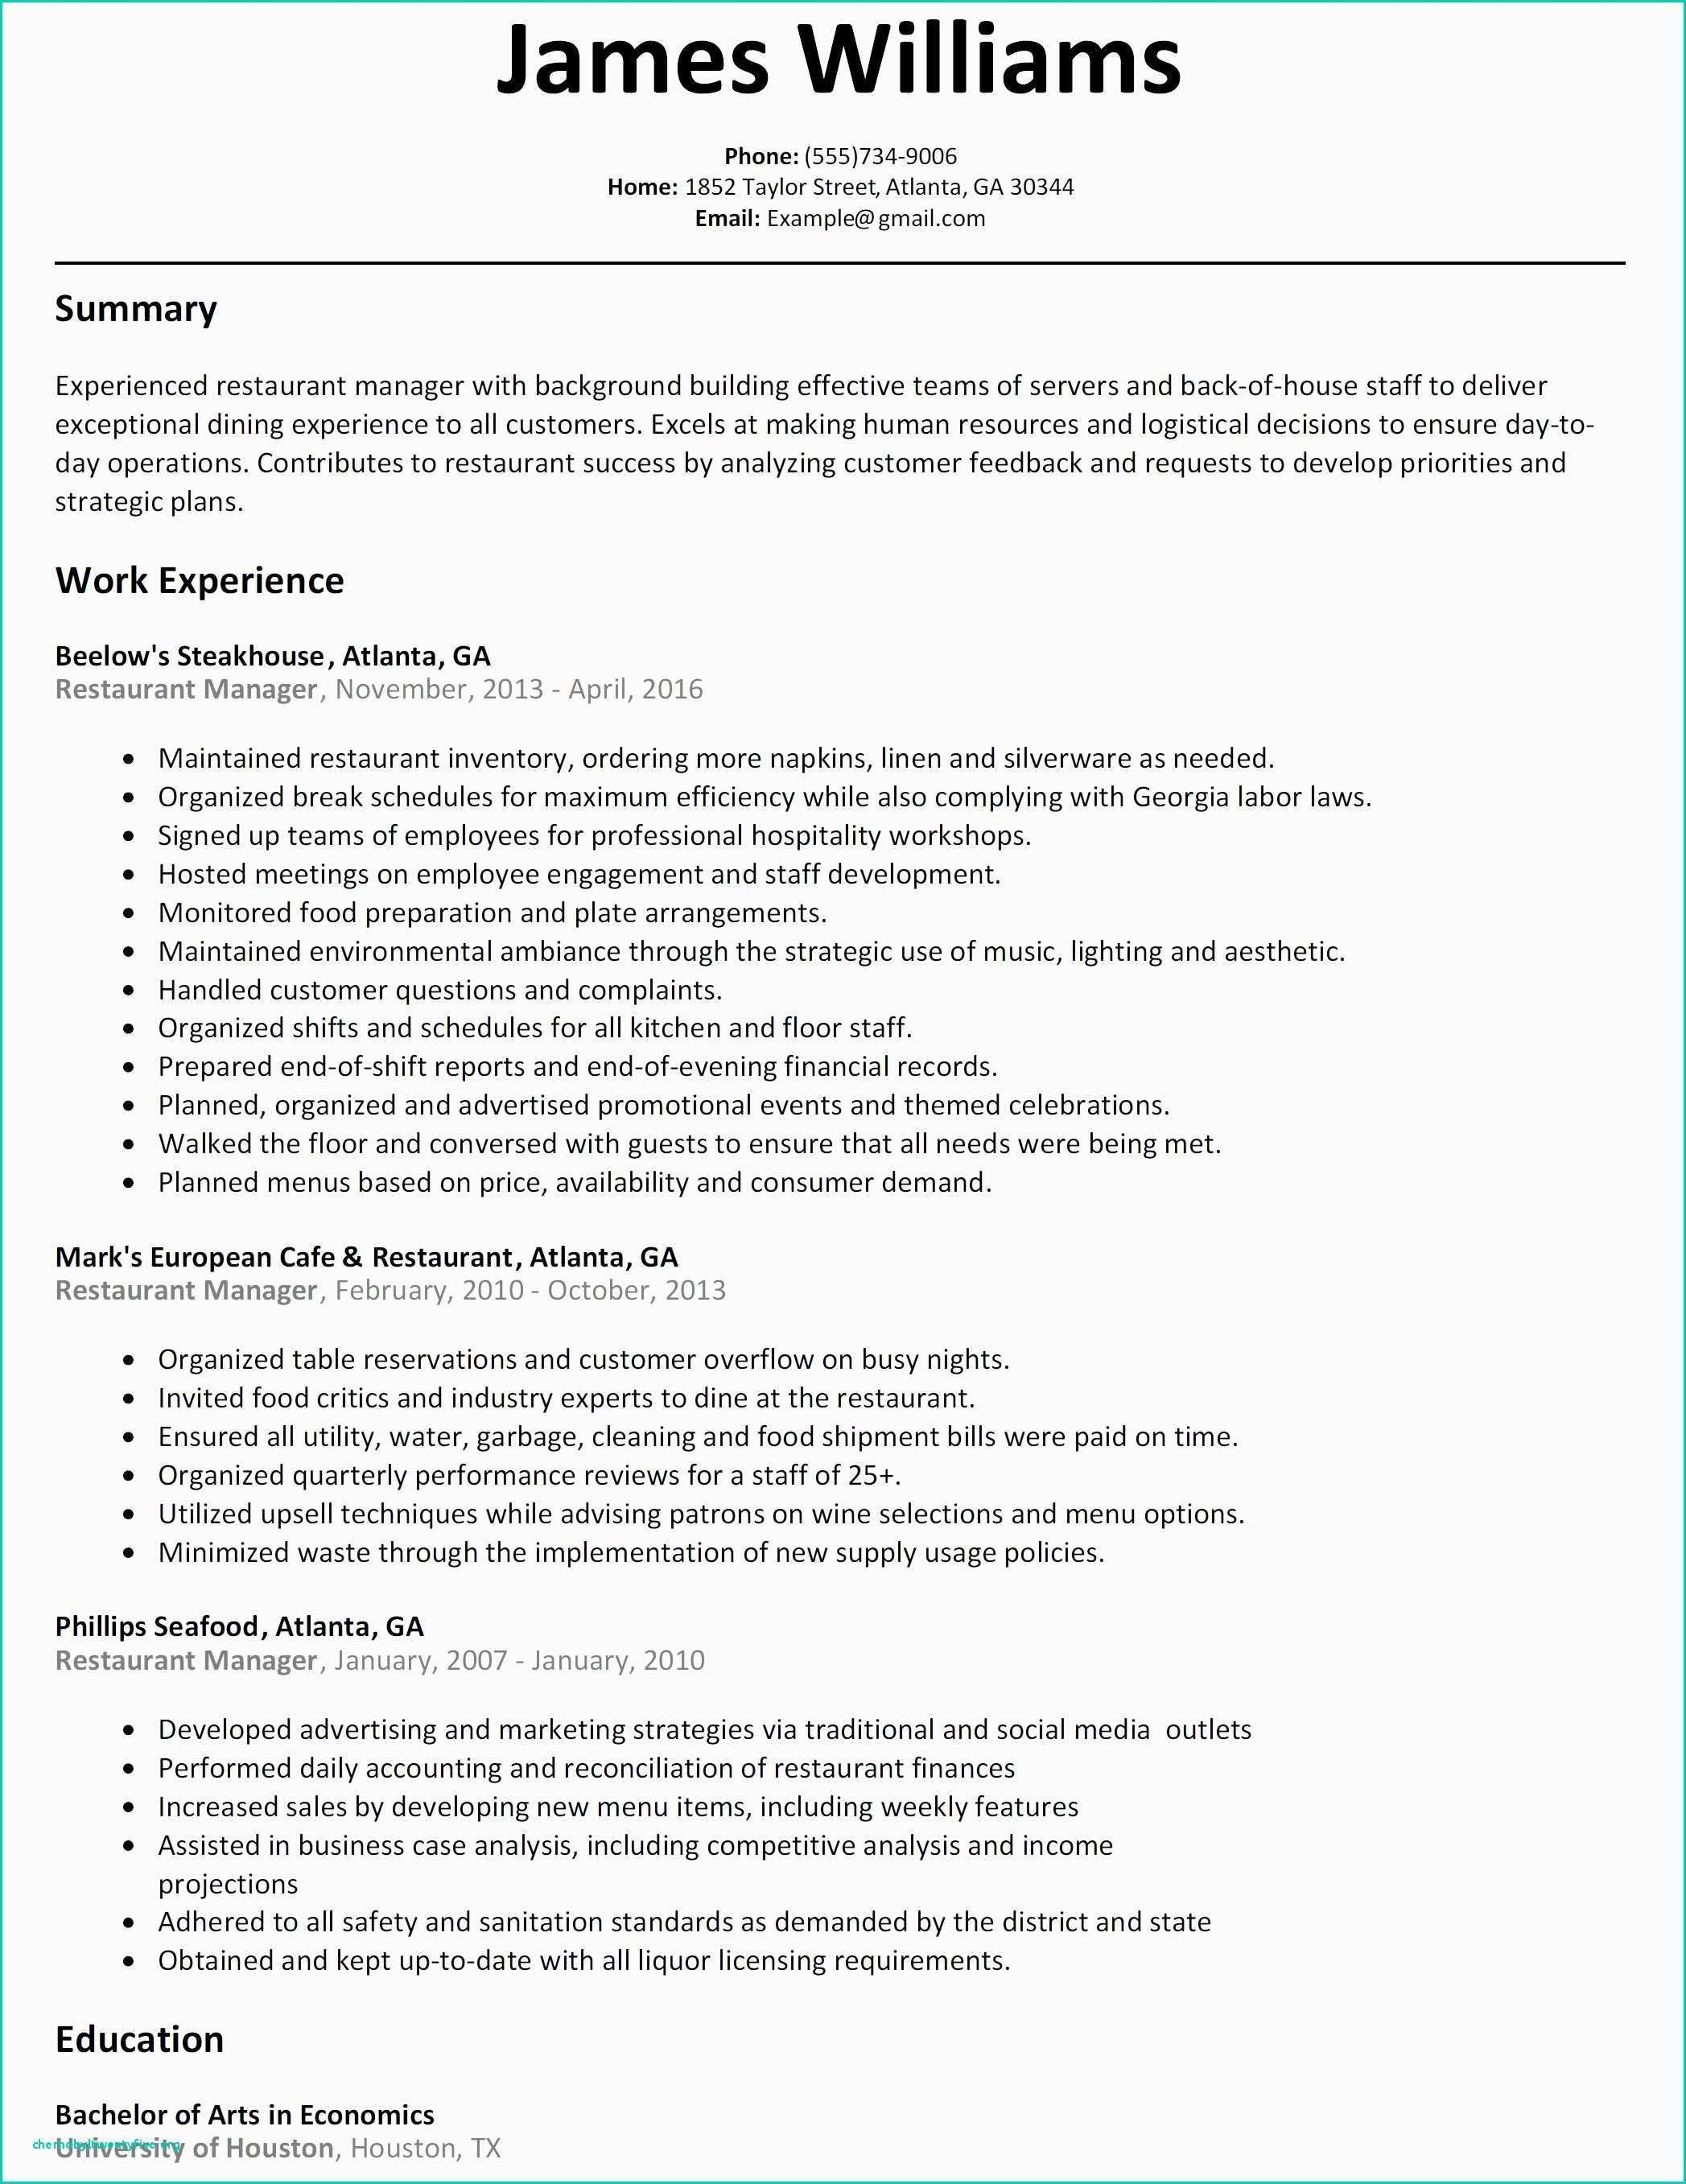 67 Awesome Collection Of It Manager Resume Examples 2016 Check More At Https Www Ourpetscrawley Com 67 Awesome Collection Of It Manager Resume Examples 2016